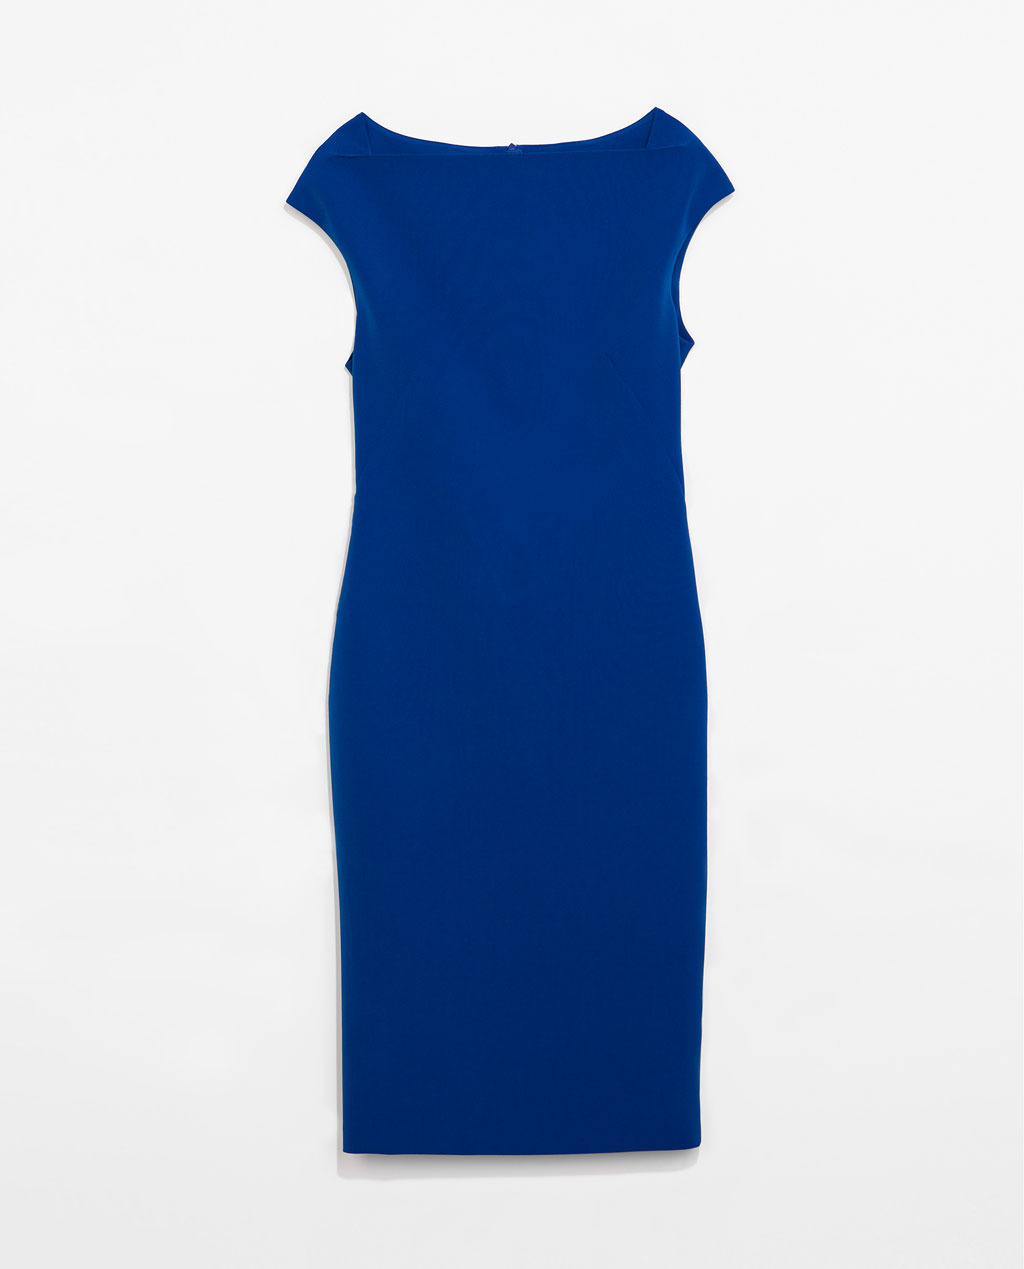 Drop Sleeved Shift Dress - style: shift; neckline: slash/boat neckline; sleeve style: capped; fit: tailored/fitted; pattern: plain; predominant colour: royal blue; occasions: work, occasion, creative work; length: on the knee; fibres: polyester/polyamide - stretch; sleeve length: short sleeve; pattern type: fabric; texture group: woven light midweight; season: s/s 2014